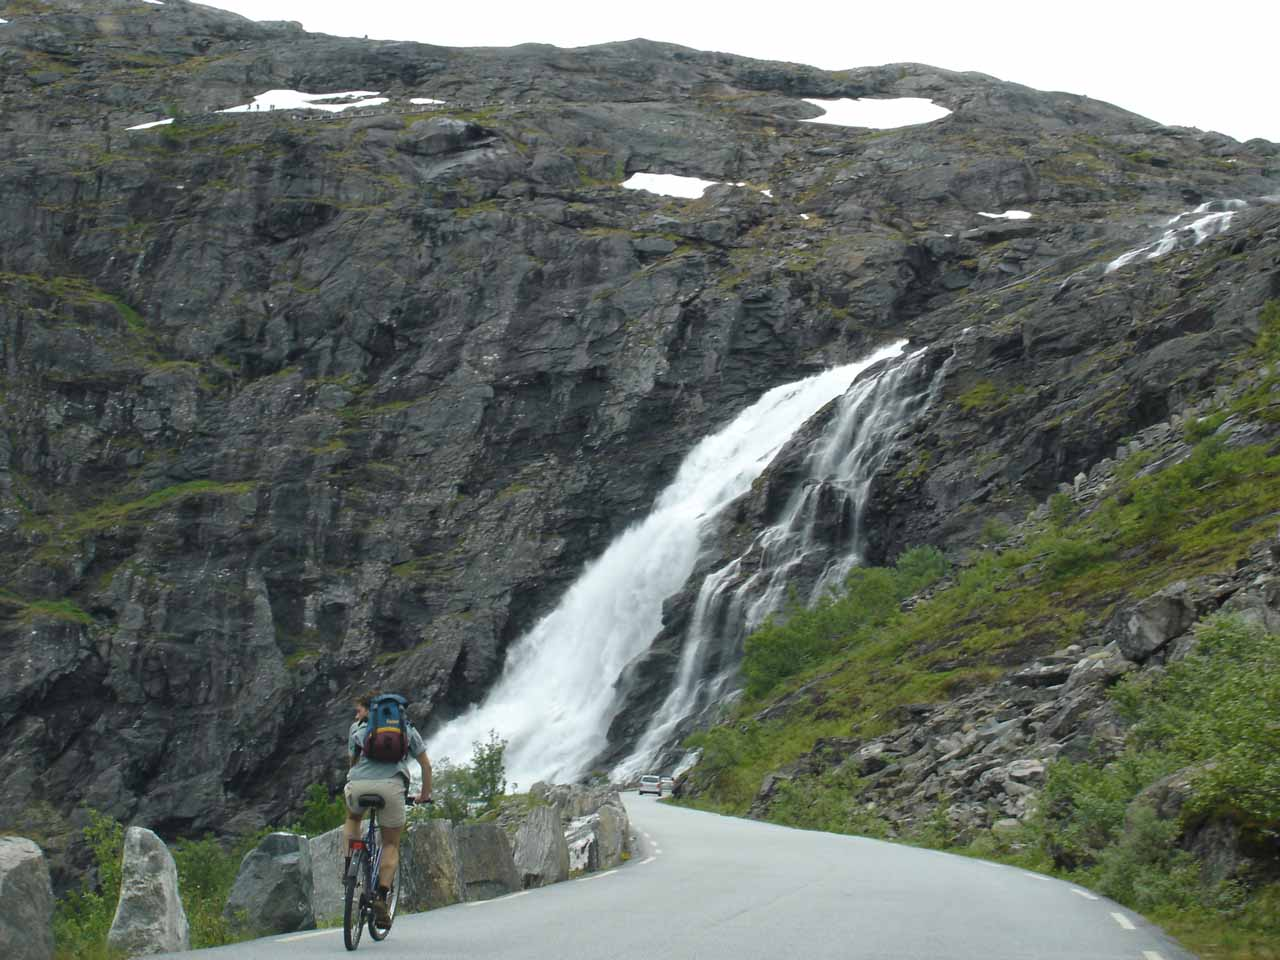 Following someone on a bike as we were approaching a switchback near the top of Stigfossen